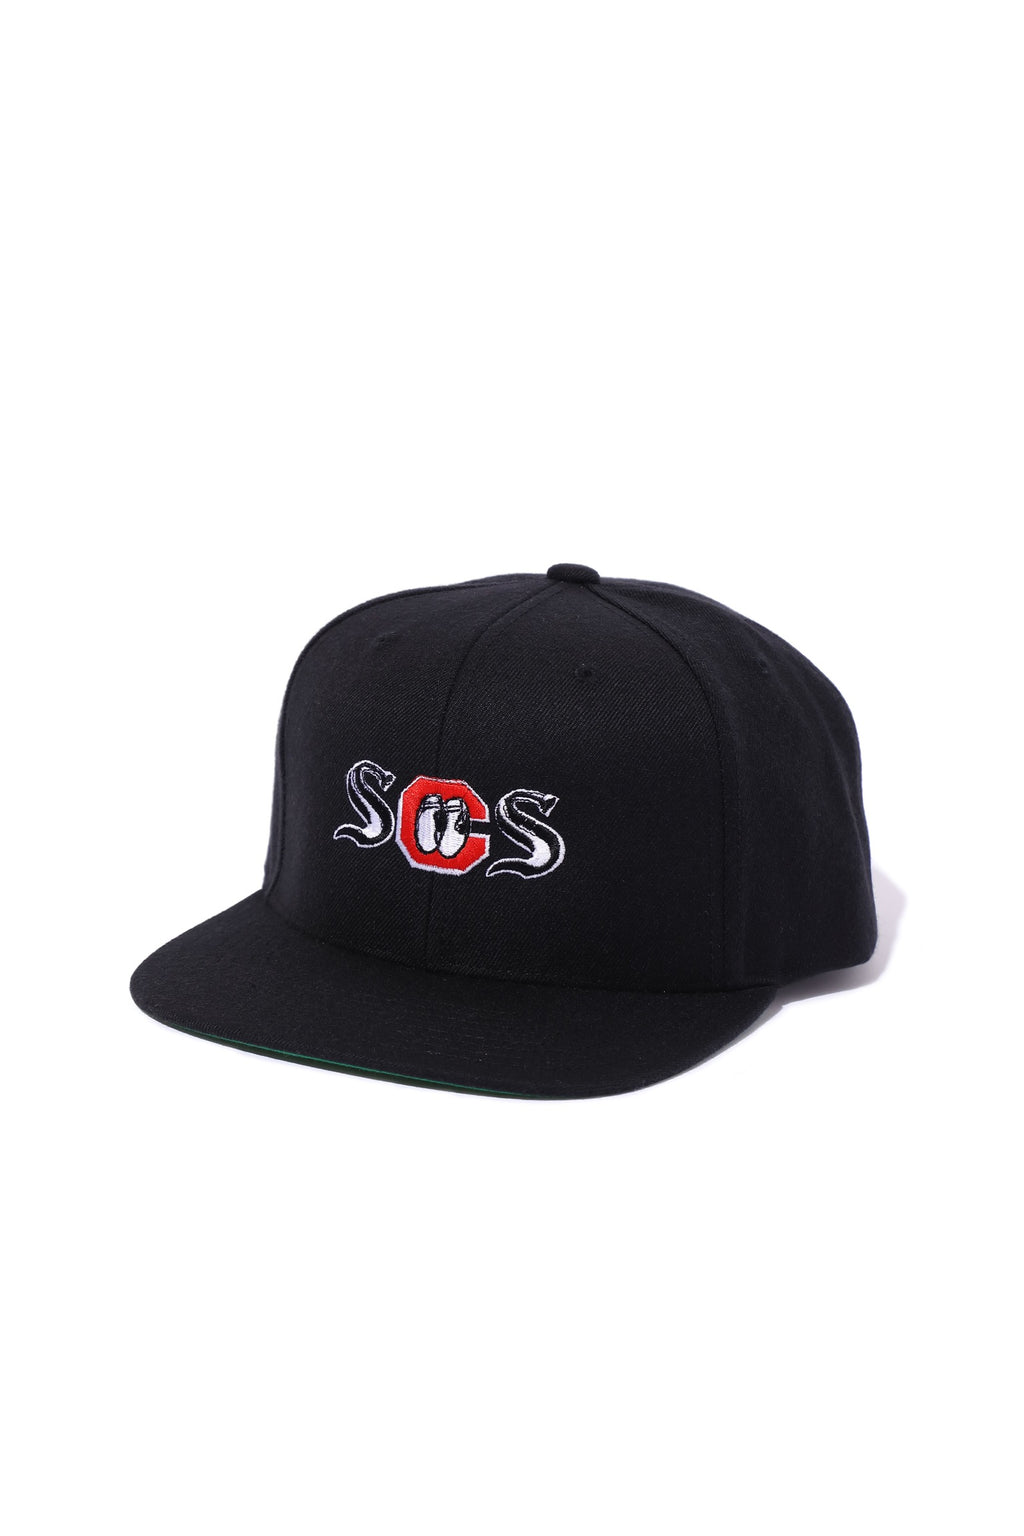 21SCS-WS-S.Eye Cap